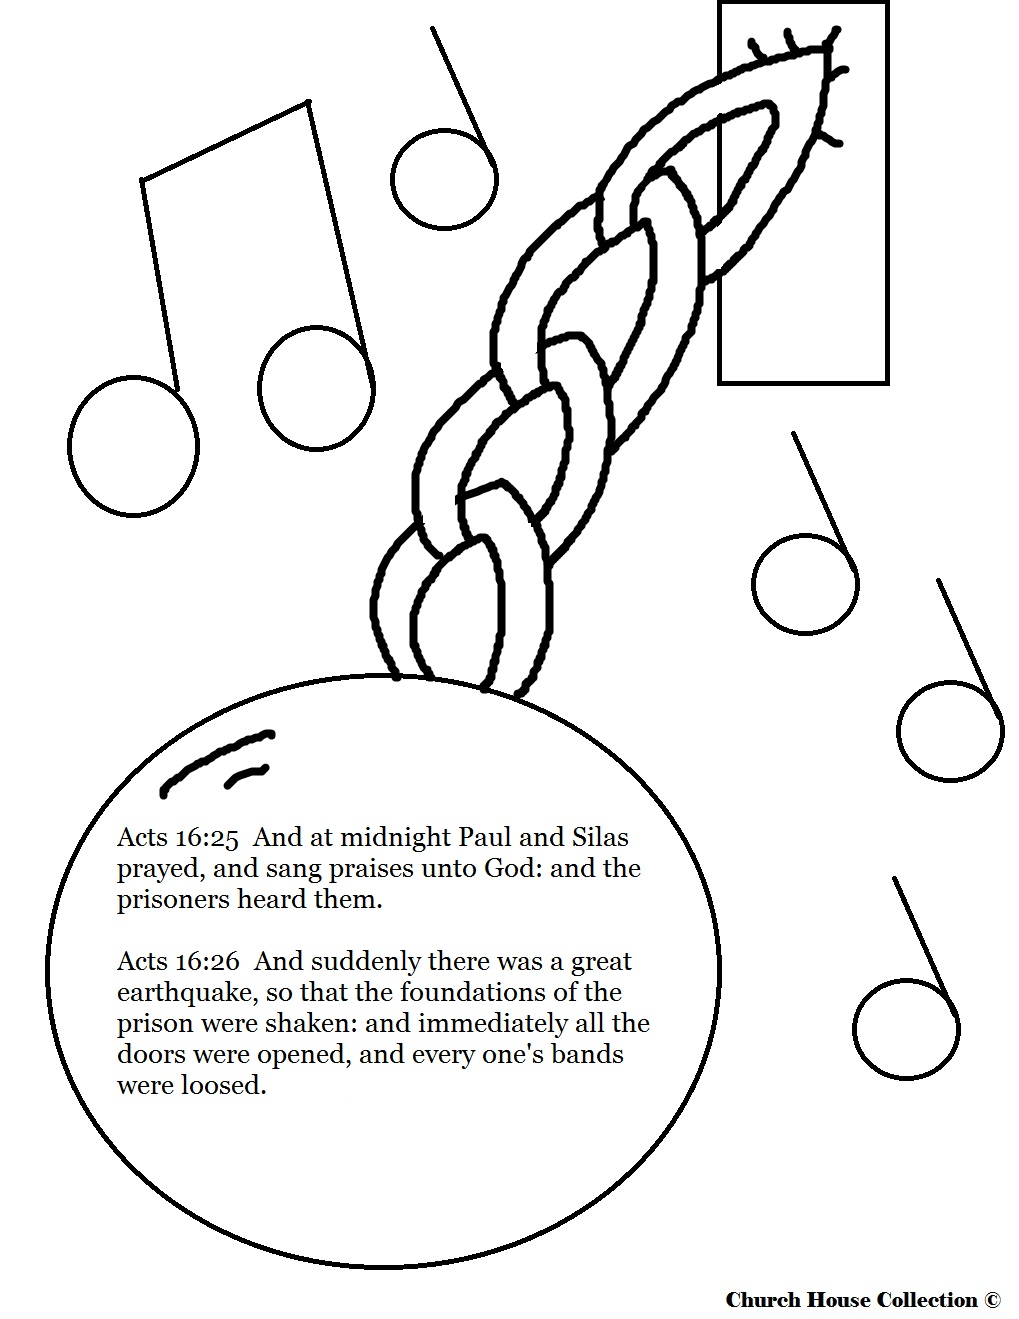 Childrens coloring sheet of saul and ananias - Church House Collection Blog Paul And Silas In Jail